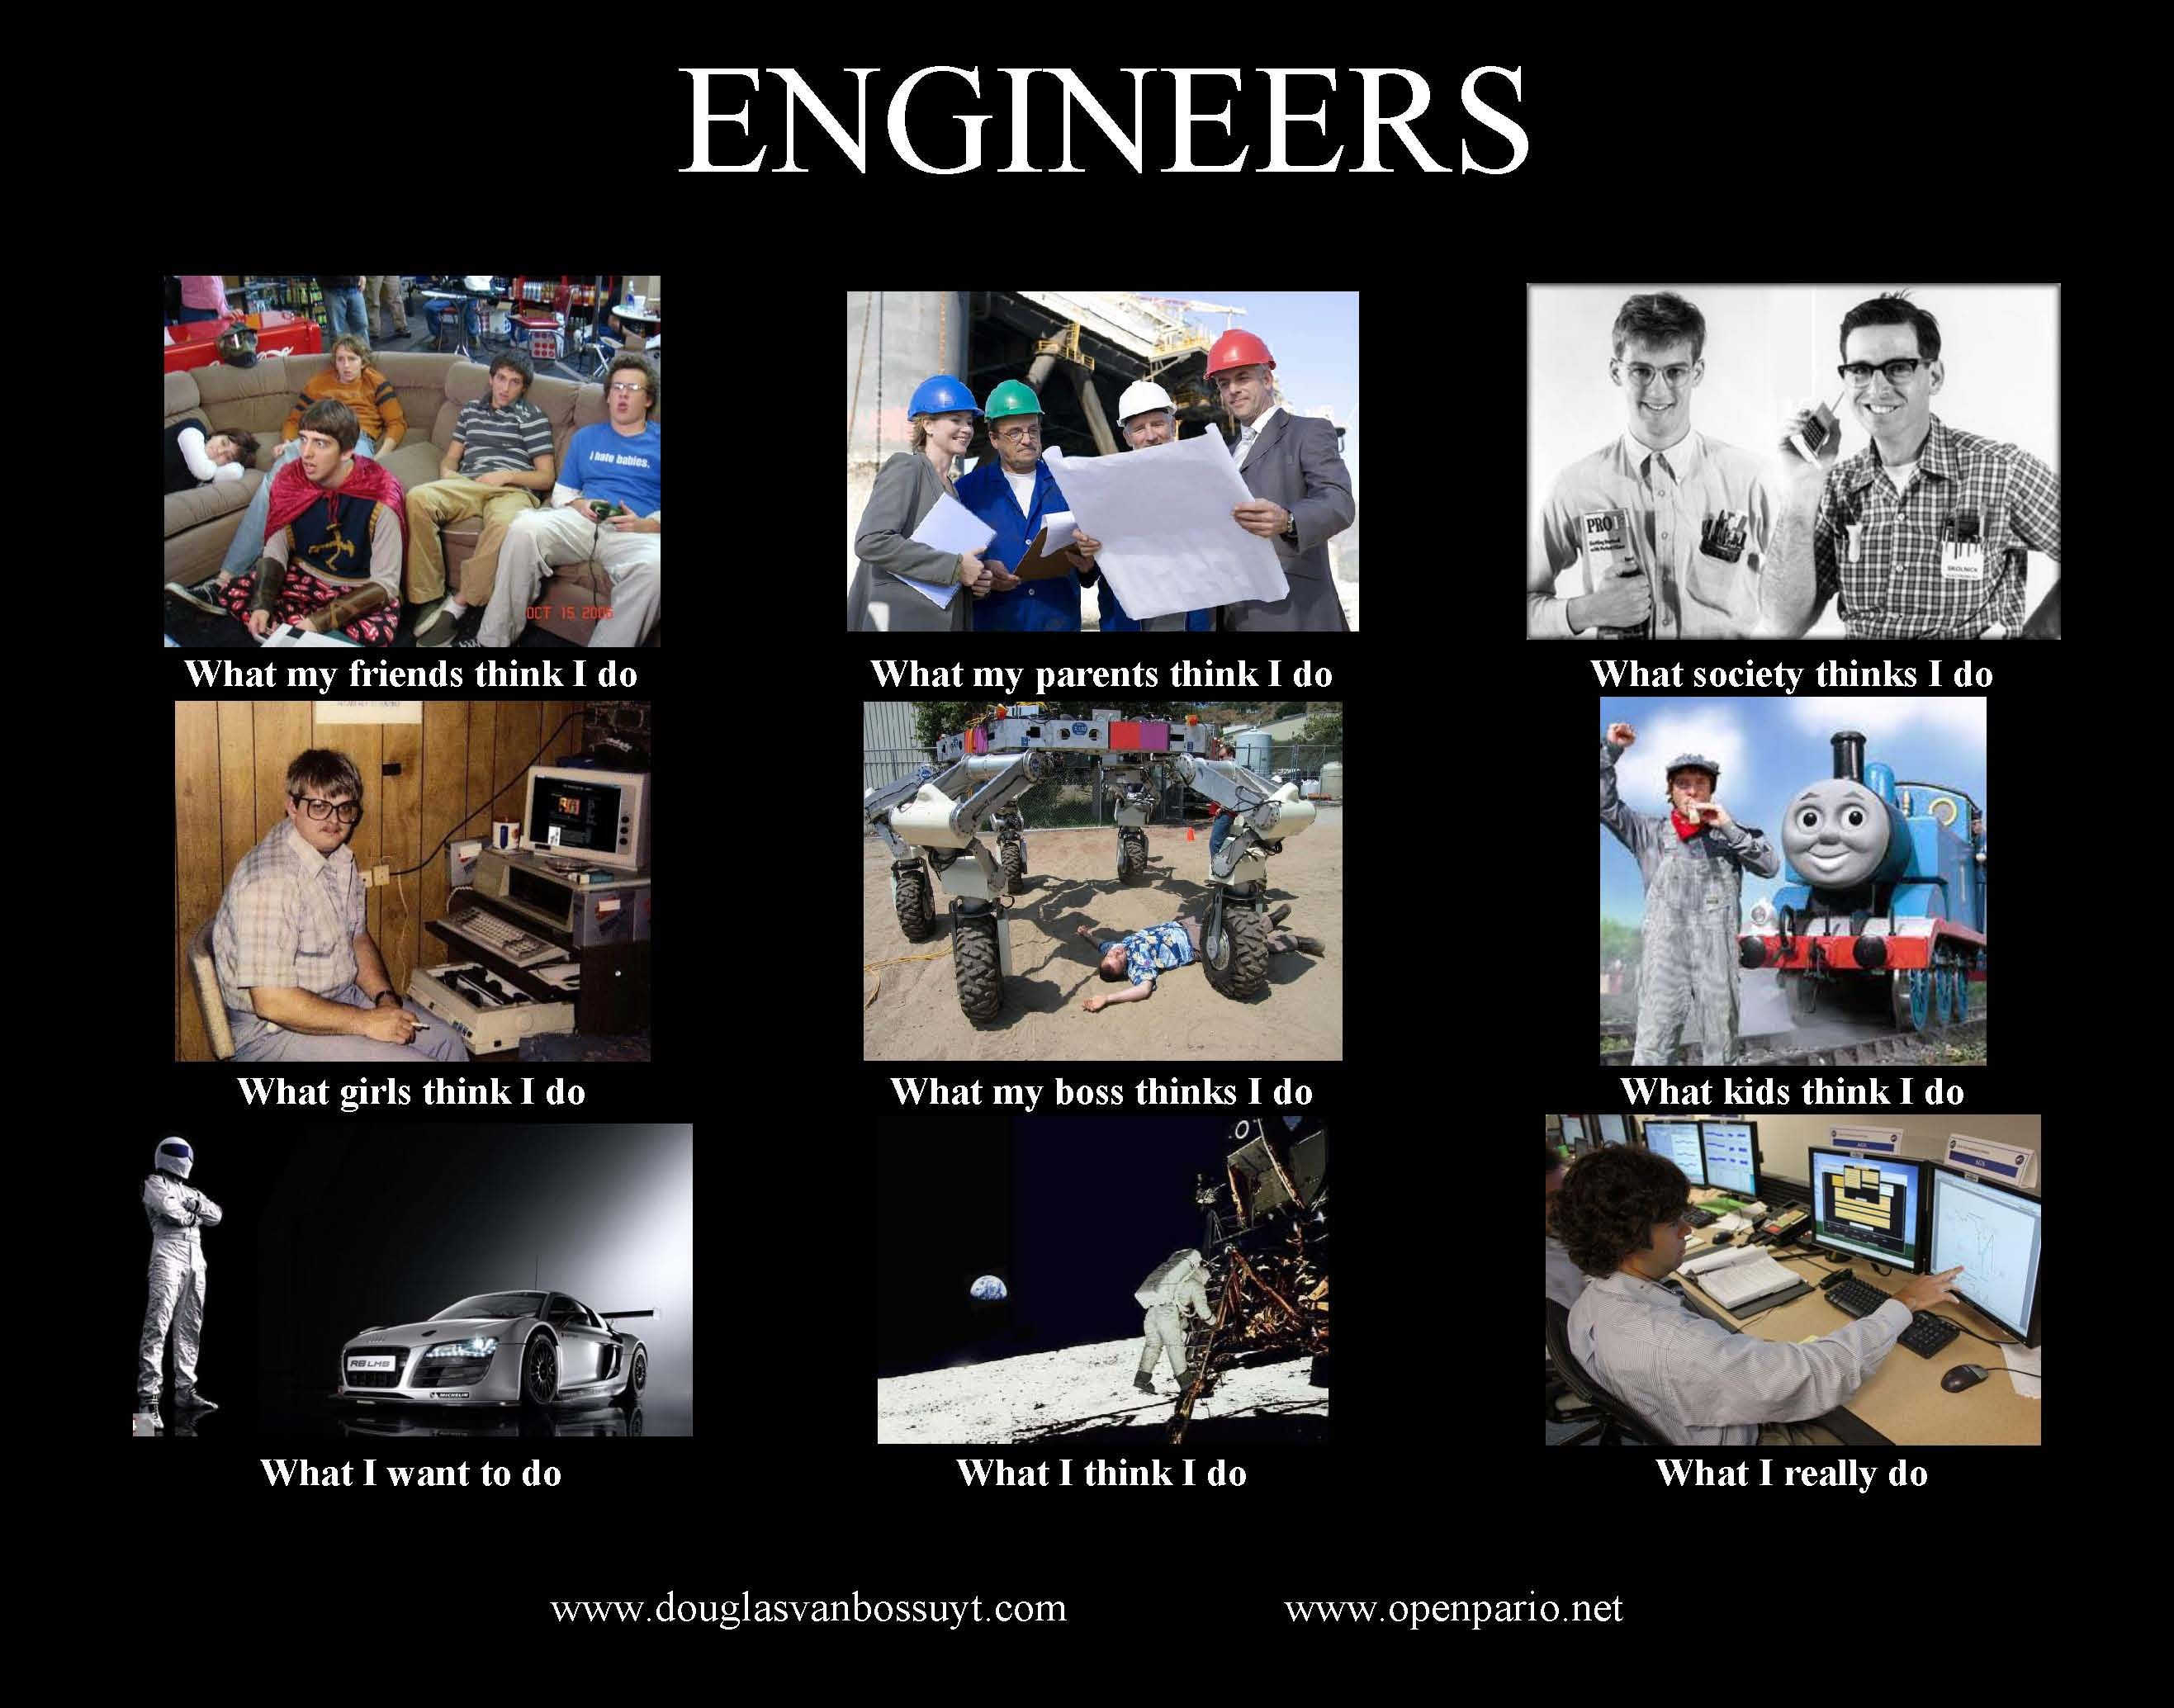 b1a76e13ae58fe4e6c47b849d2429b5f what people think i do\u201d meme about yes, there are engineers in